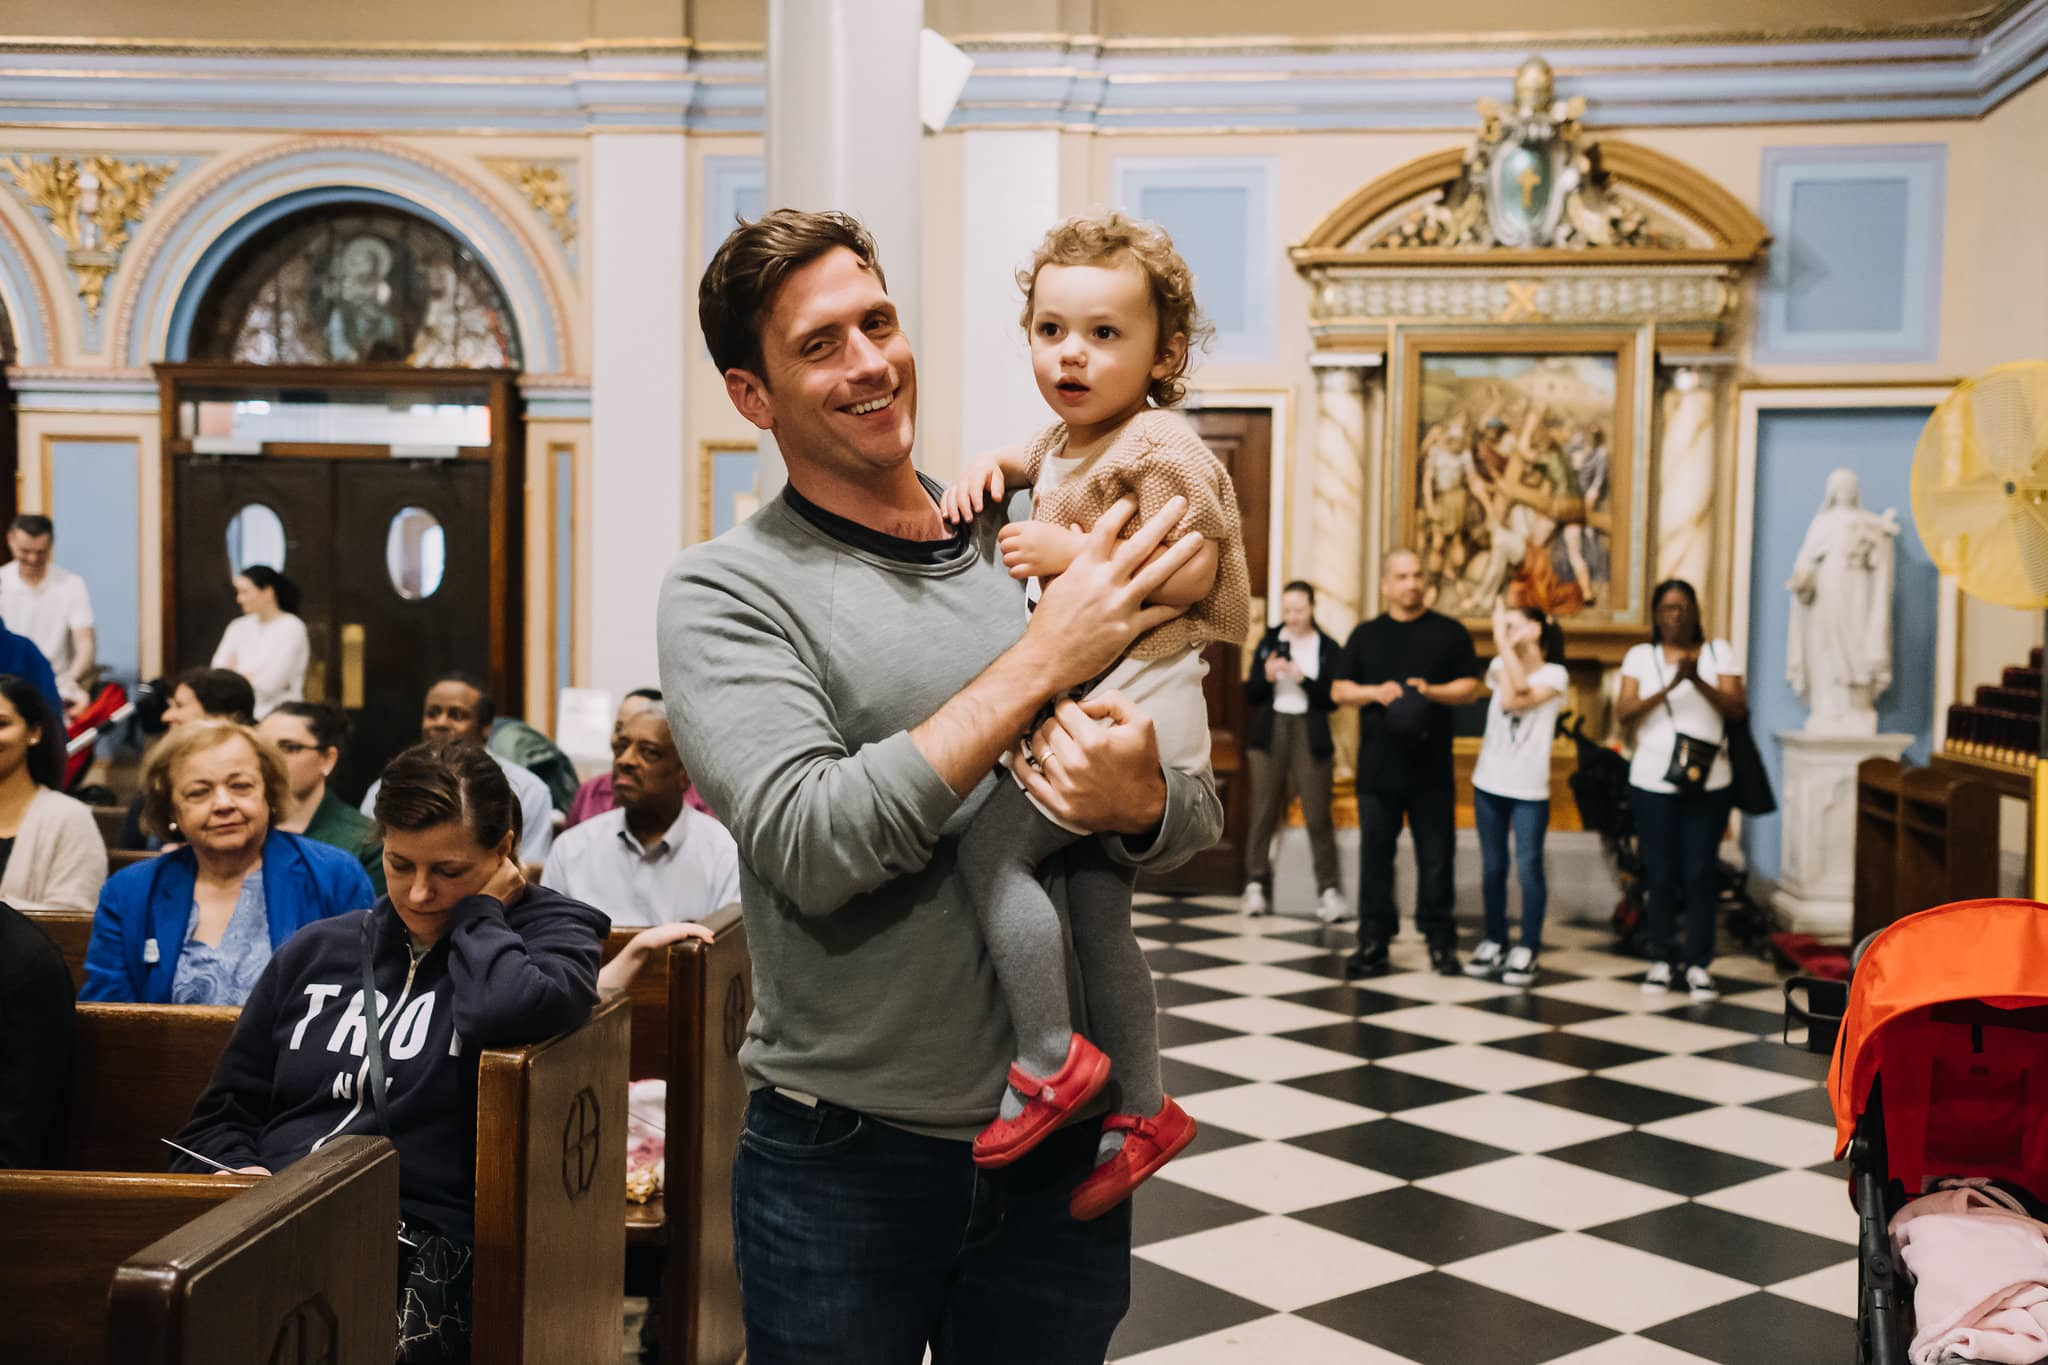 family-michael-goodall-kids-community-st-francis-de-sales-church-new-york-city.jpg